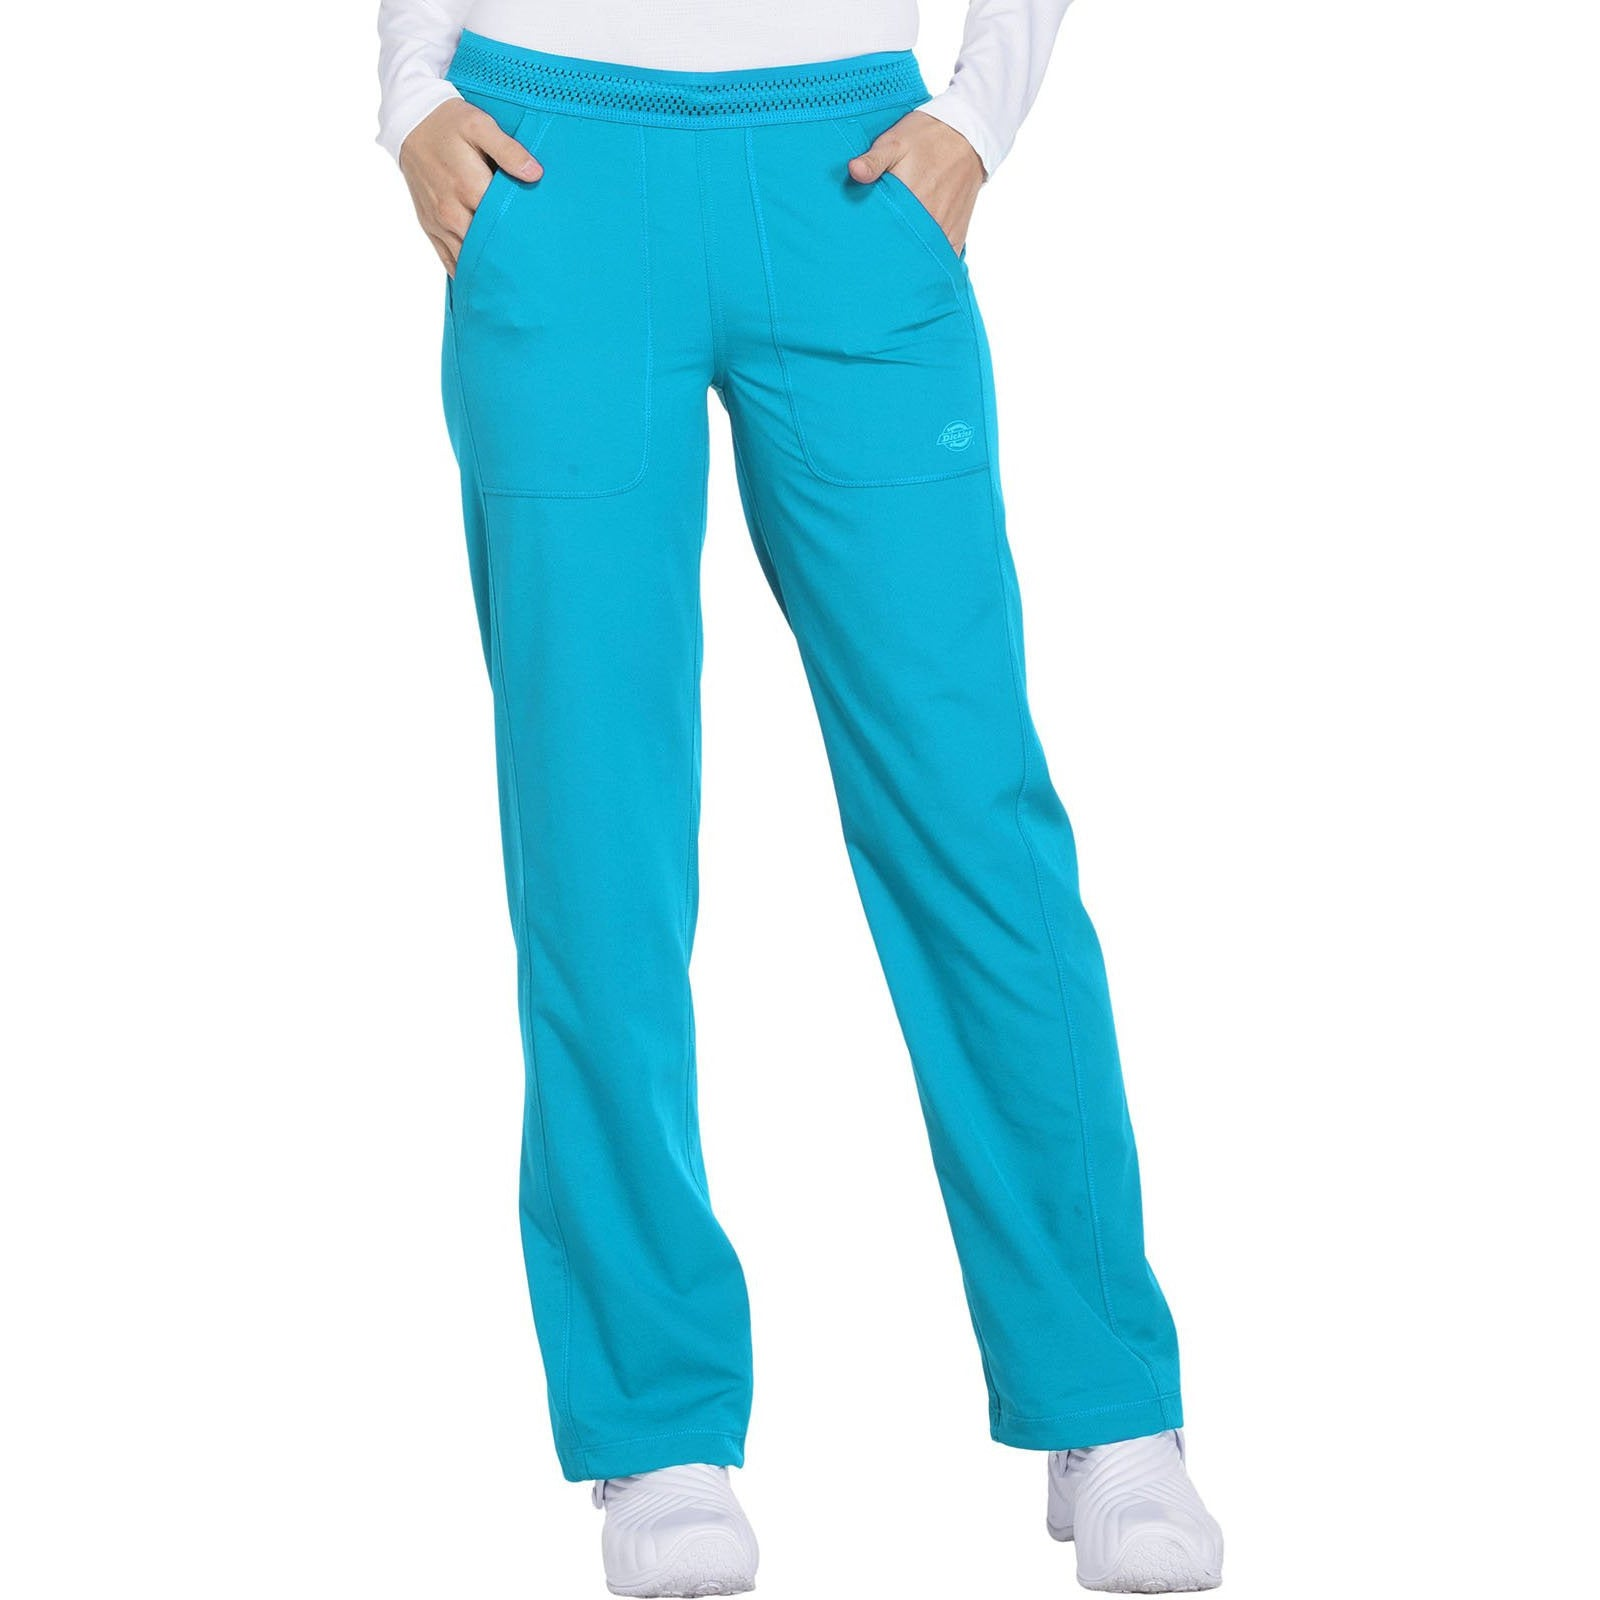 Mid Rise Straight Leg Pull-on Pant DK120P INSEAM 30.5'' *FINAL SALE*